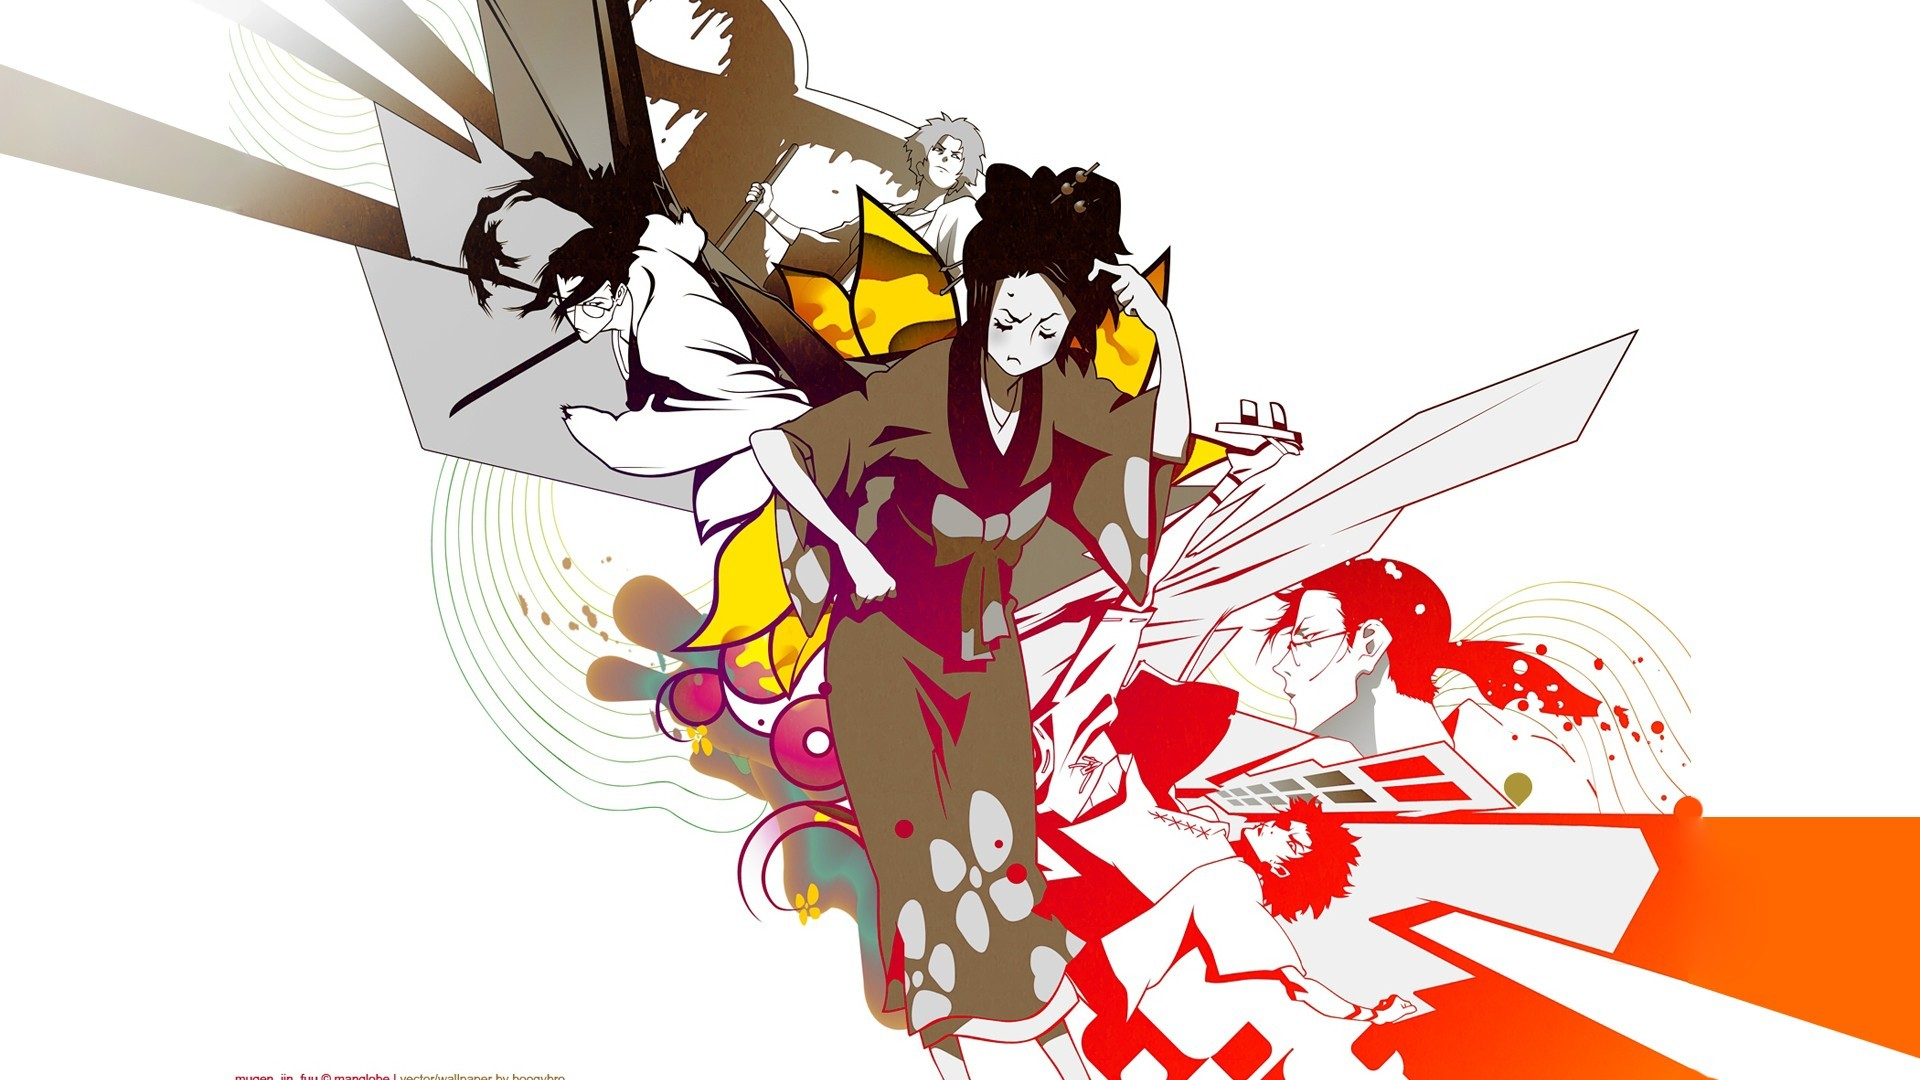 1920x1080 Samurai Champloo Mugen characters anime Fuu Japanese clothes anime girls  Jin Roh wallpaper |  | 222394 | WallpaperUP